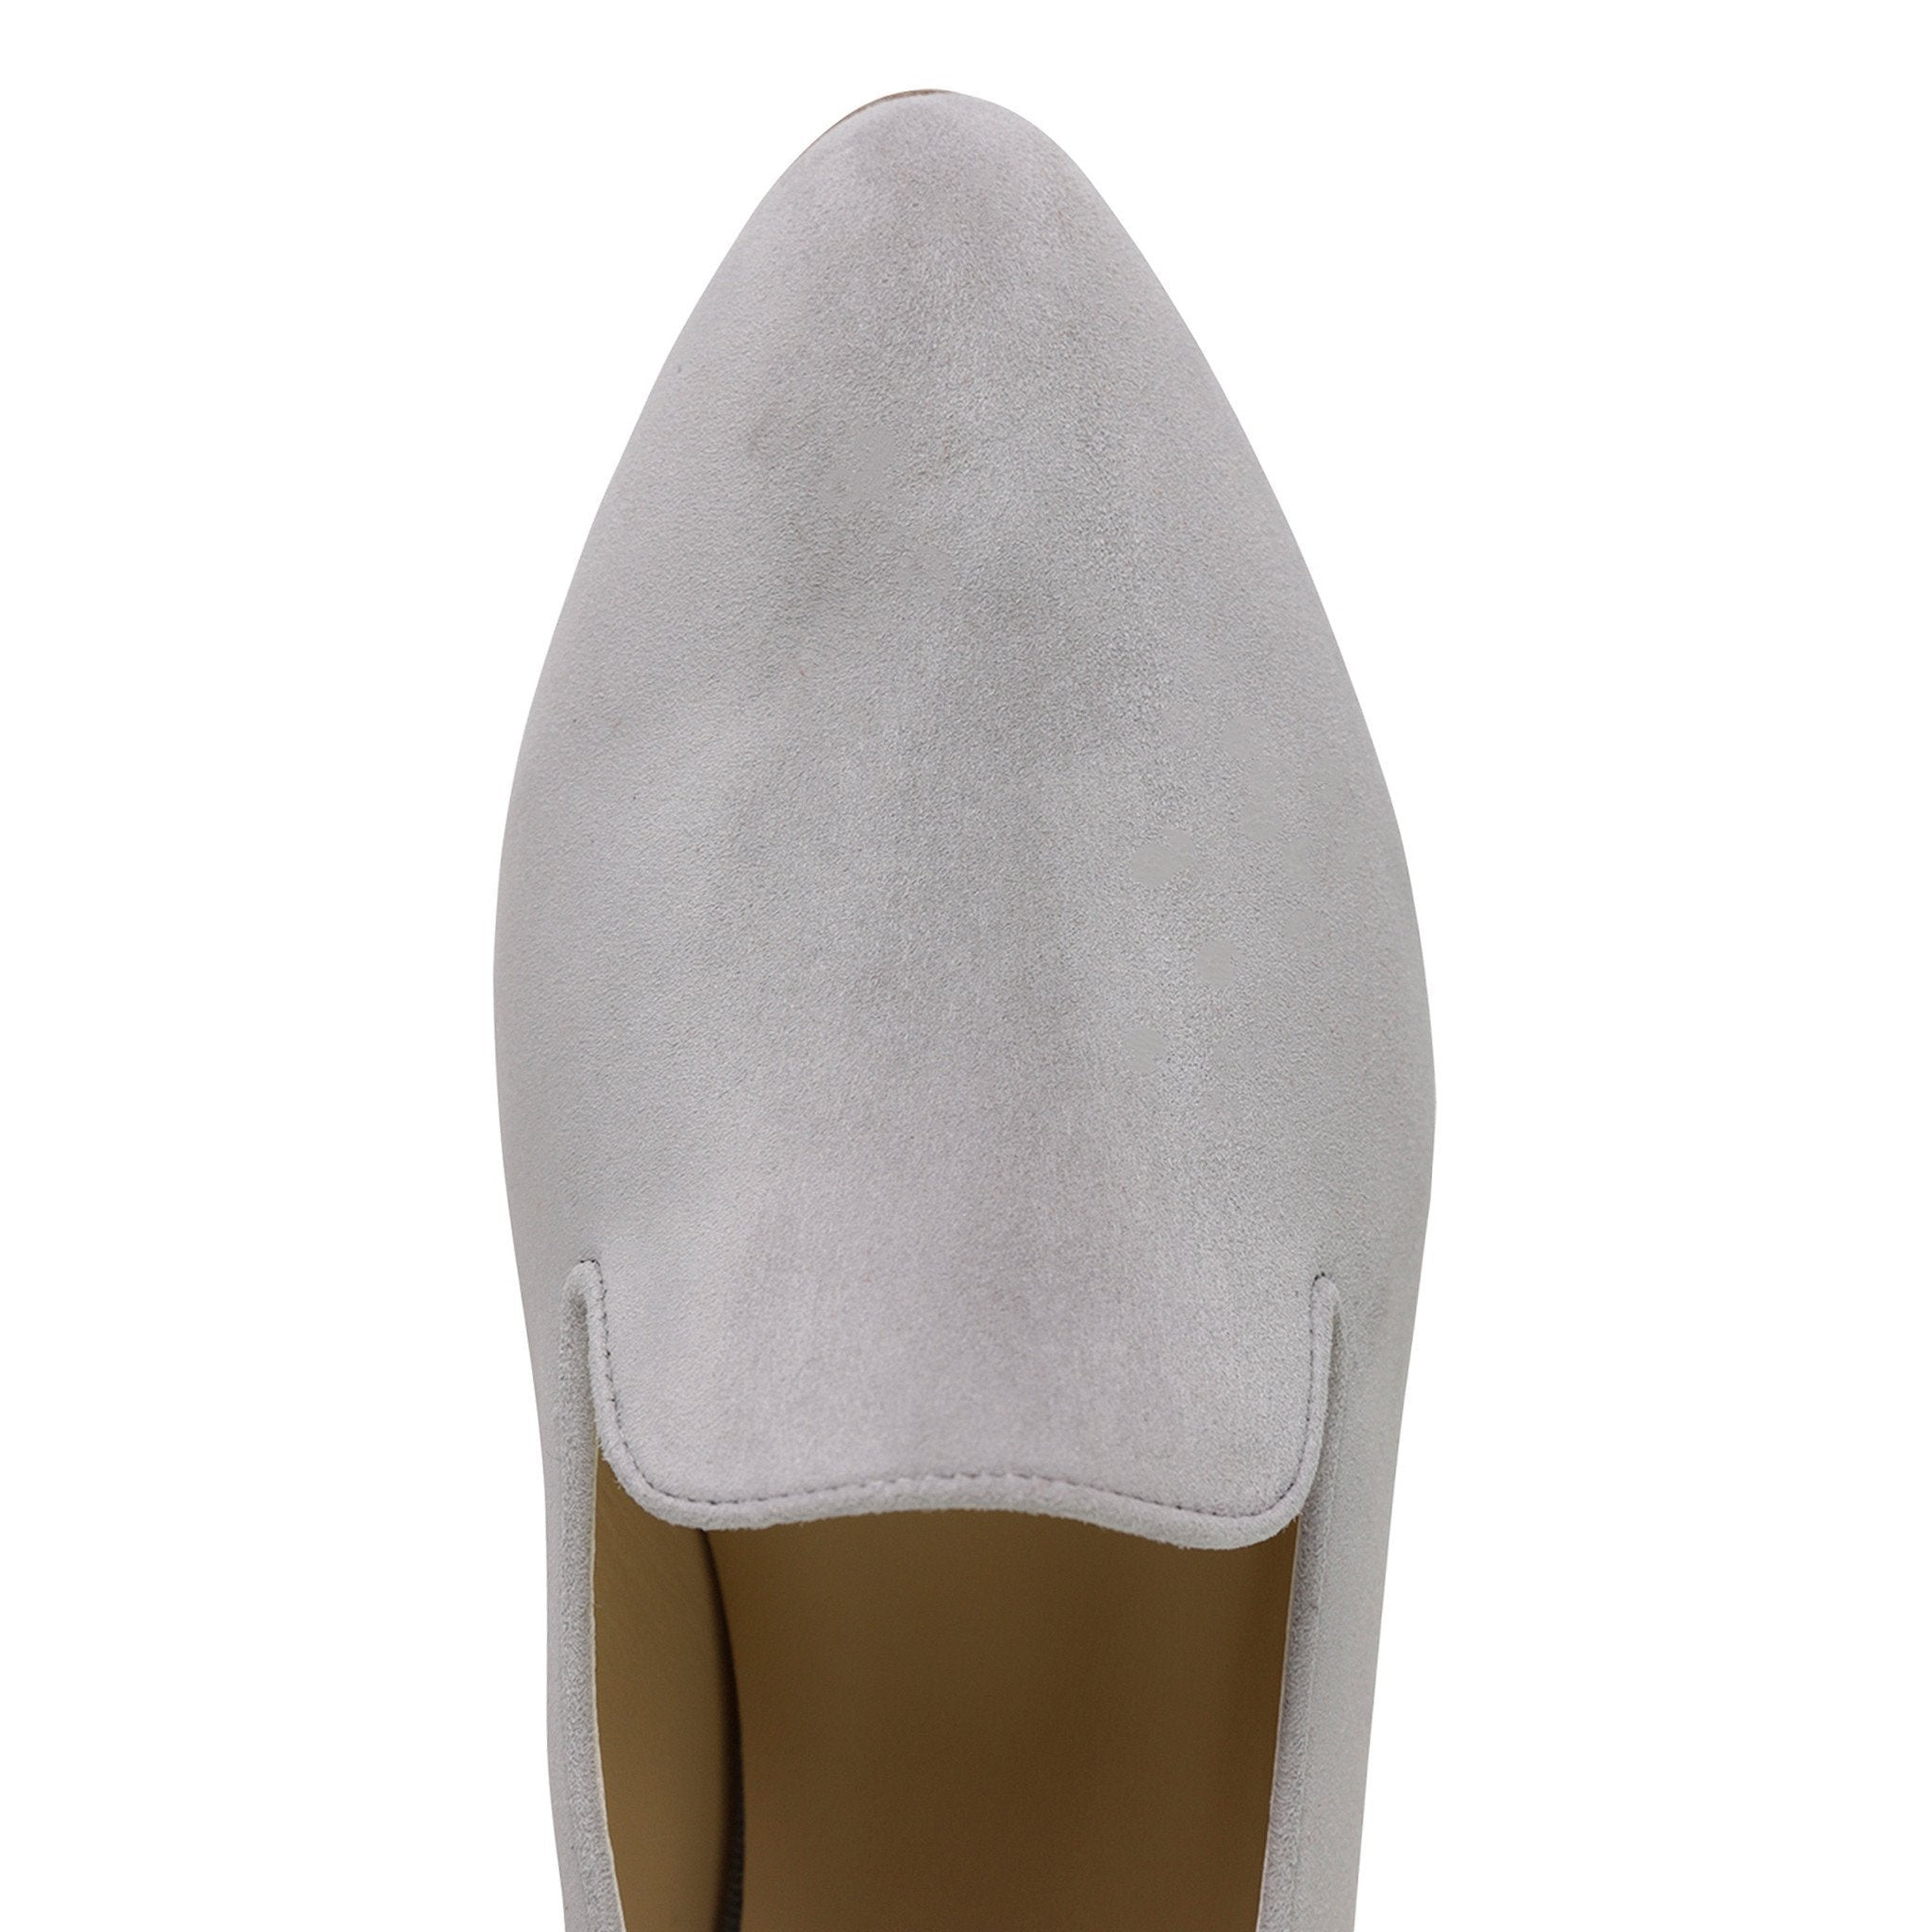 RAVENNA - Velukid Grigio, VIAJIYU - Women's Hand Made Sustainable Luxury Shoes. Made in Italy. Made to Order.